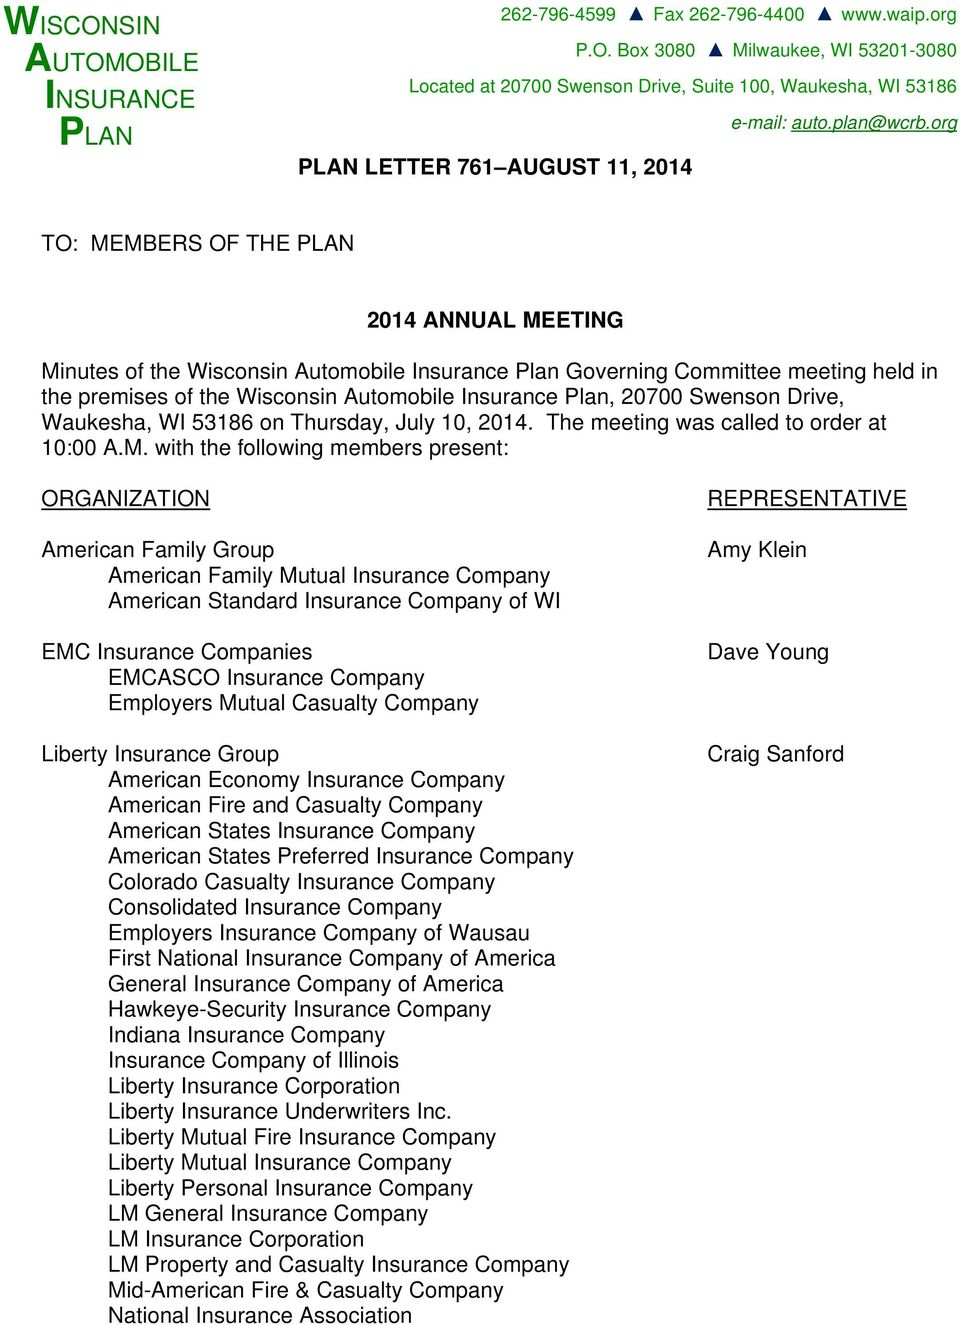 org PLAN LETTER 761 AUGUST 11, 2014 TO: MEMBERS OF THE PLAN 2014 ANNUAL MEETING Minutes of the Wisconsin Automobile Insurance Plan Governing Committee meeting held in the premises of the Wisconsin